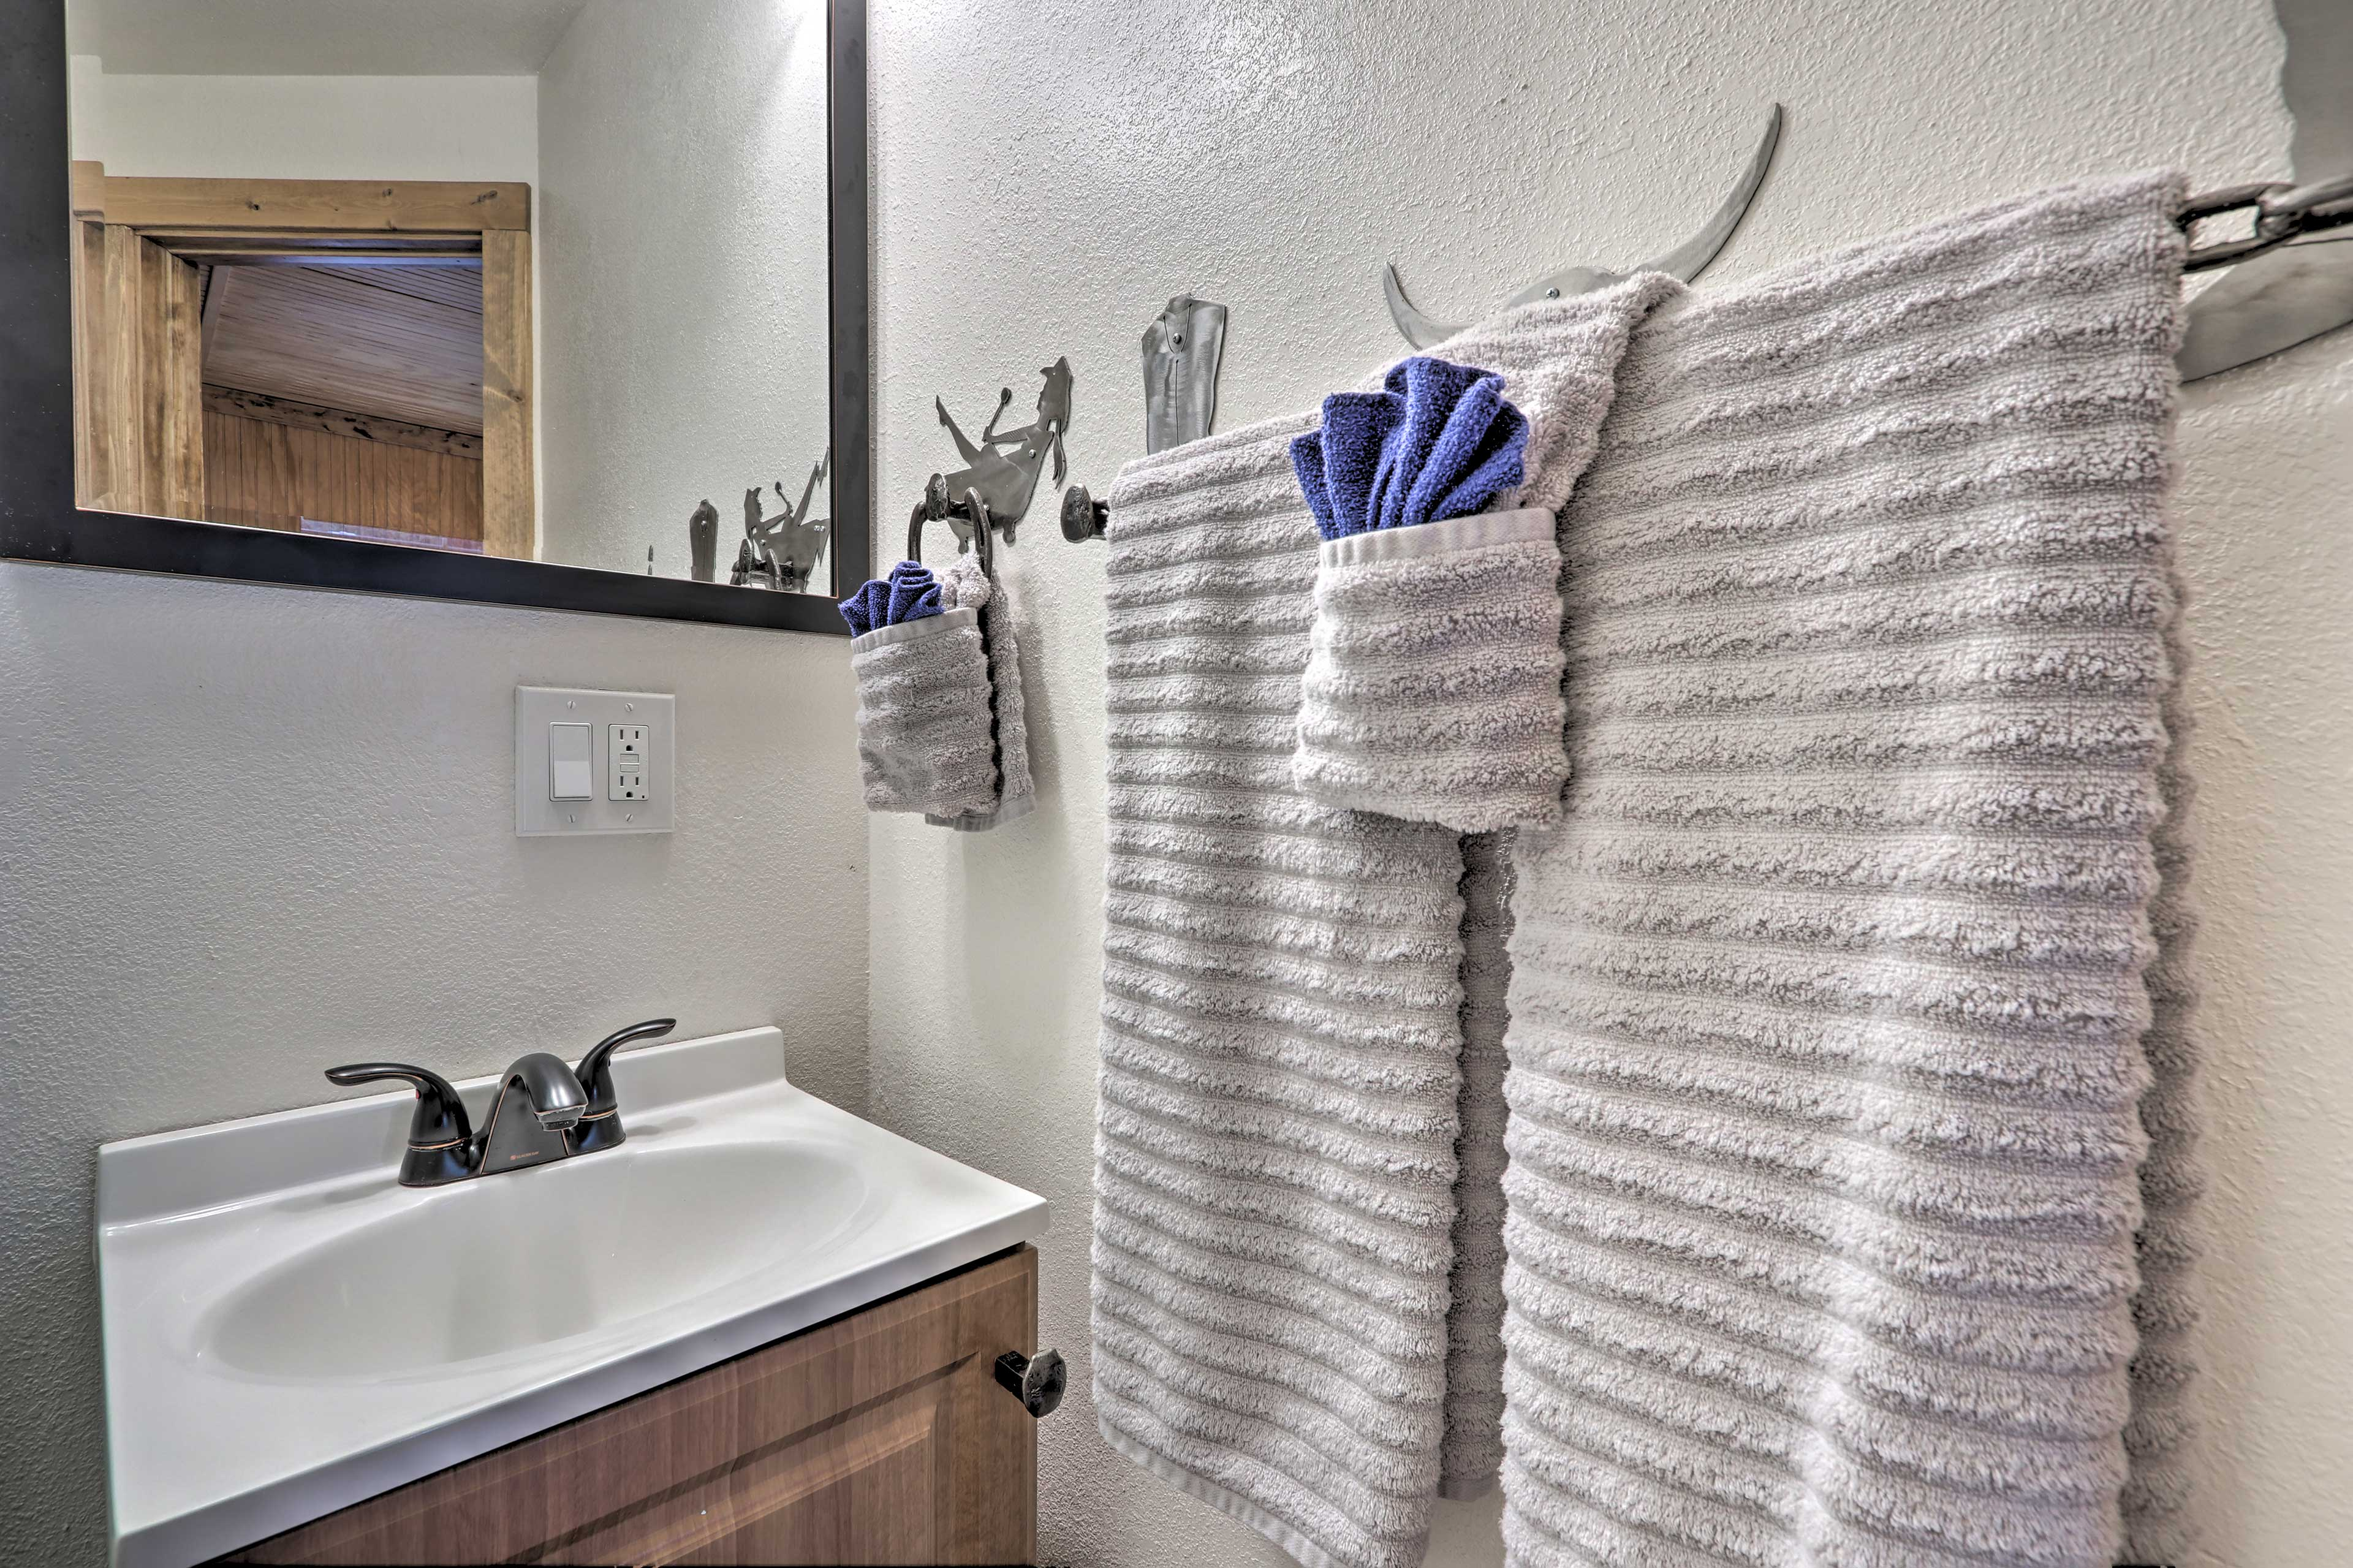 Towels and linens are provided.